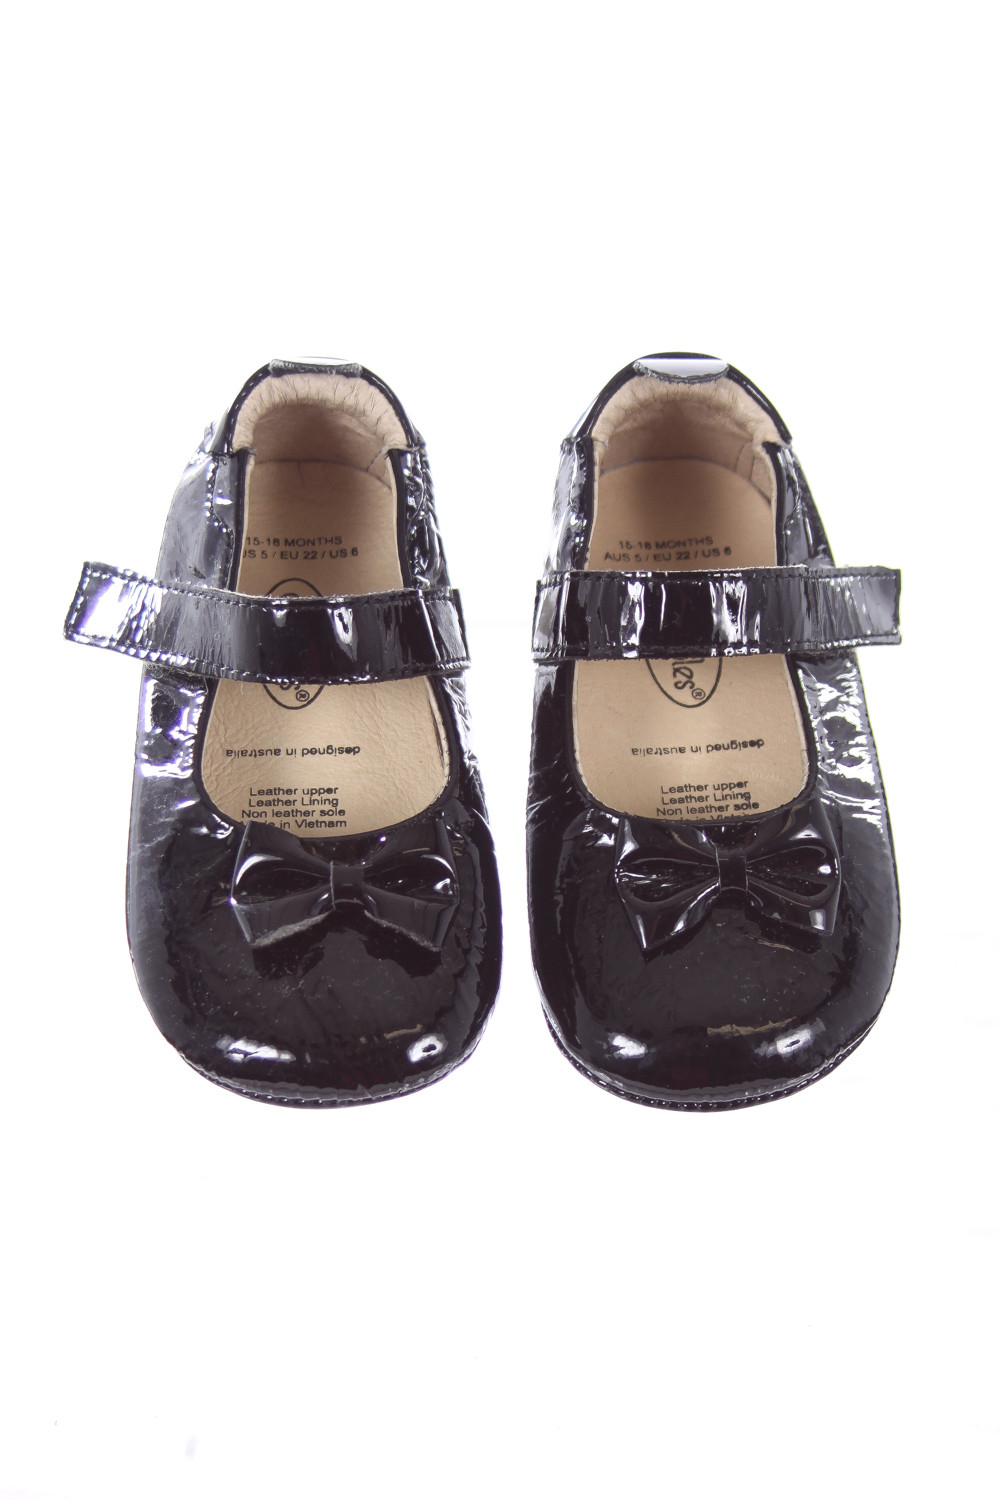 soles black patent leather soft shoes toddler size 6